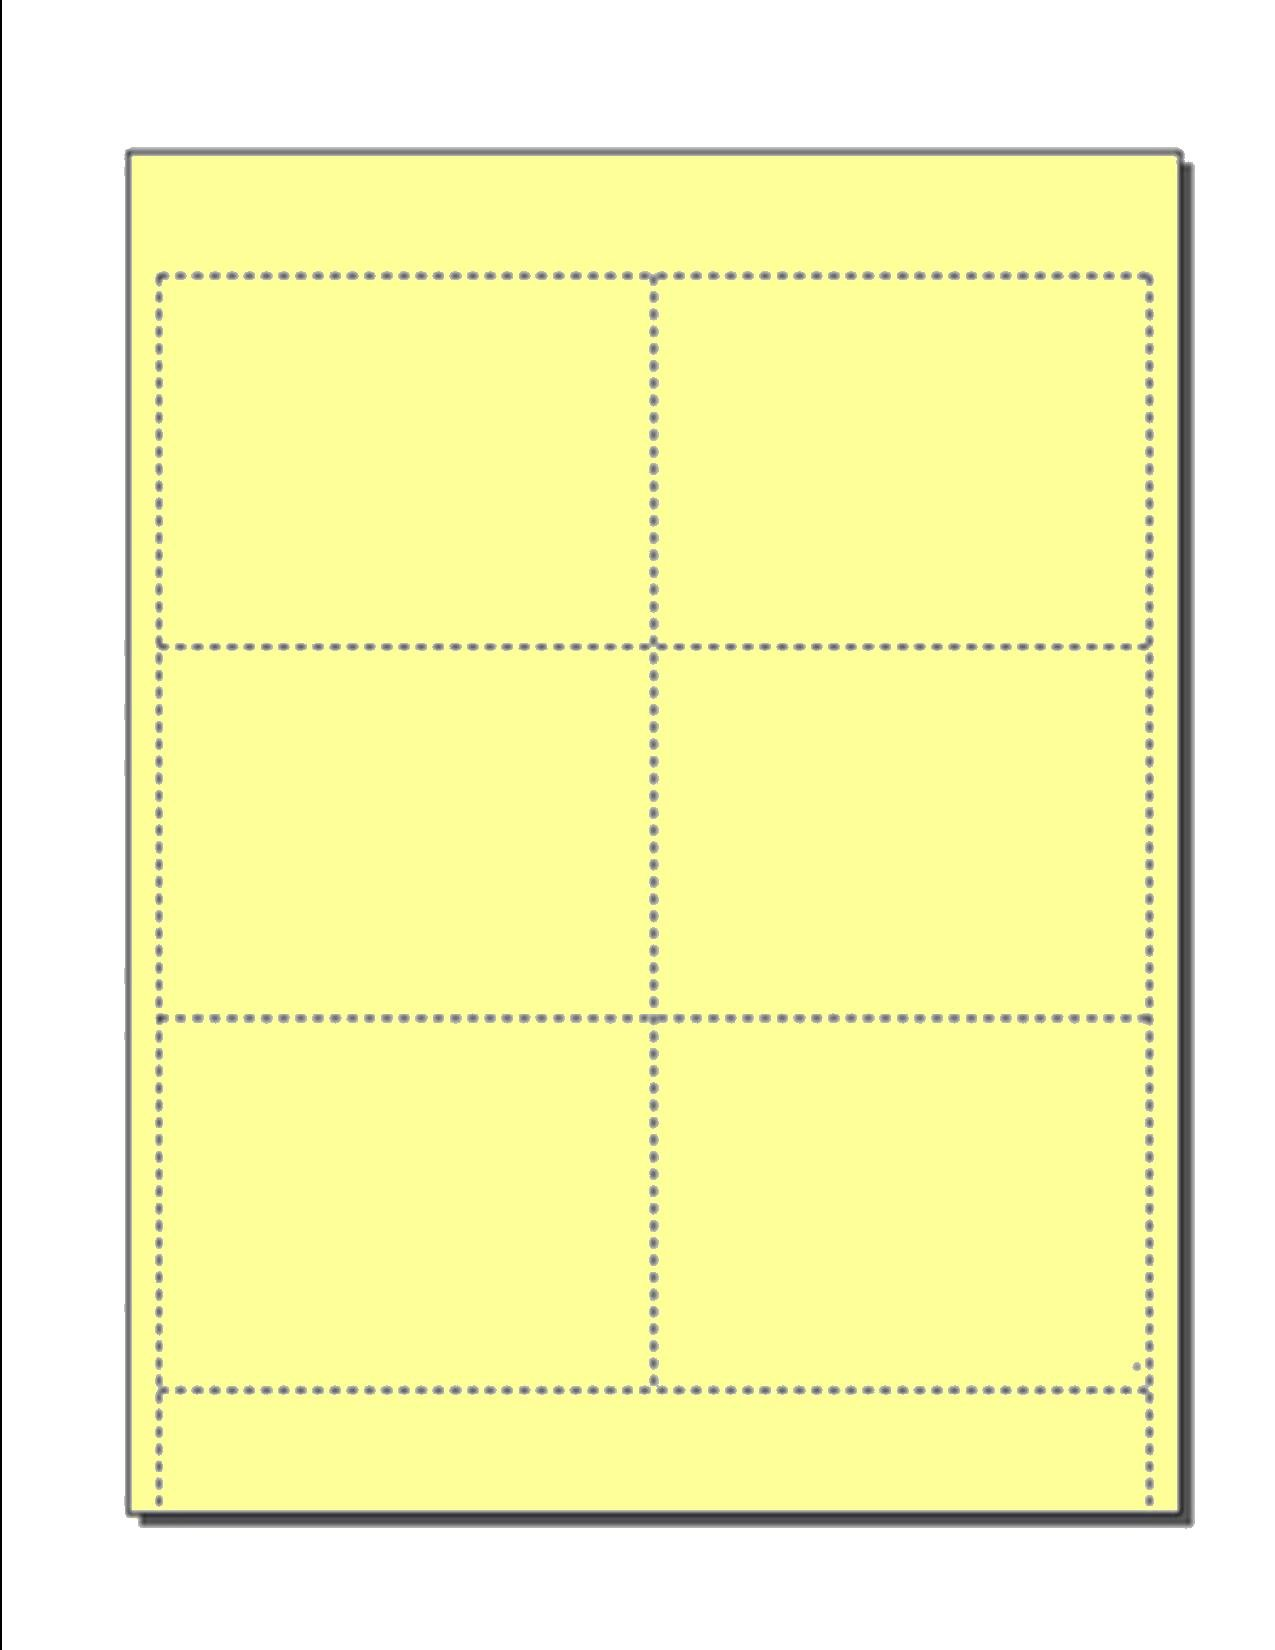 Blank Name Badge Inserts, Print-Ready on 8.5'' x 11'', 67-lb Yellow Vellum, 6 Badges Per Sheet (4'' x 3'') - 250 Sheets by Zapco